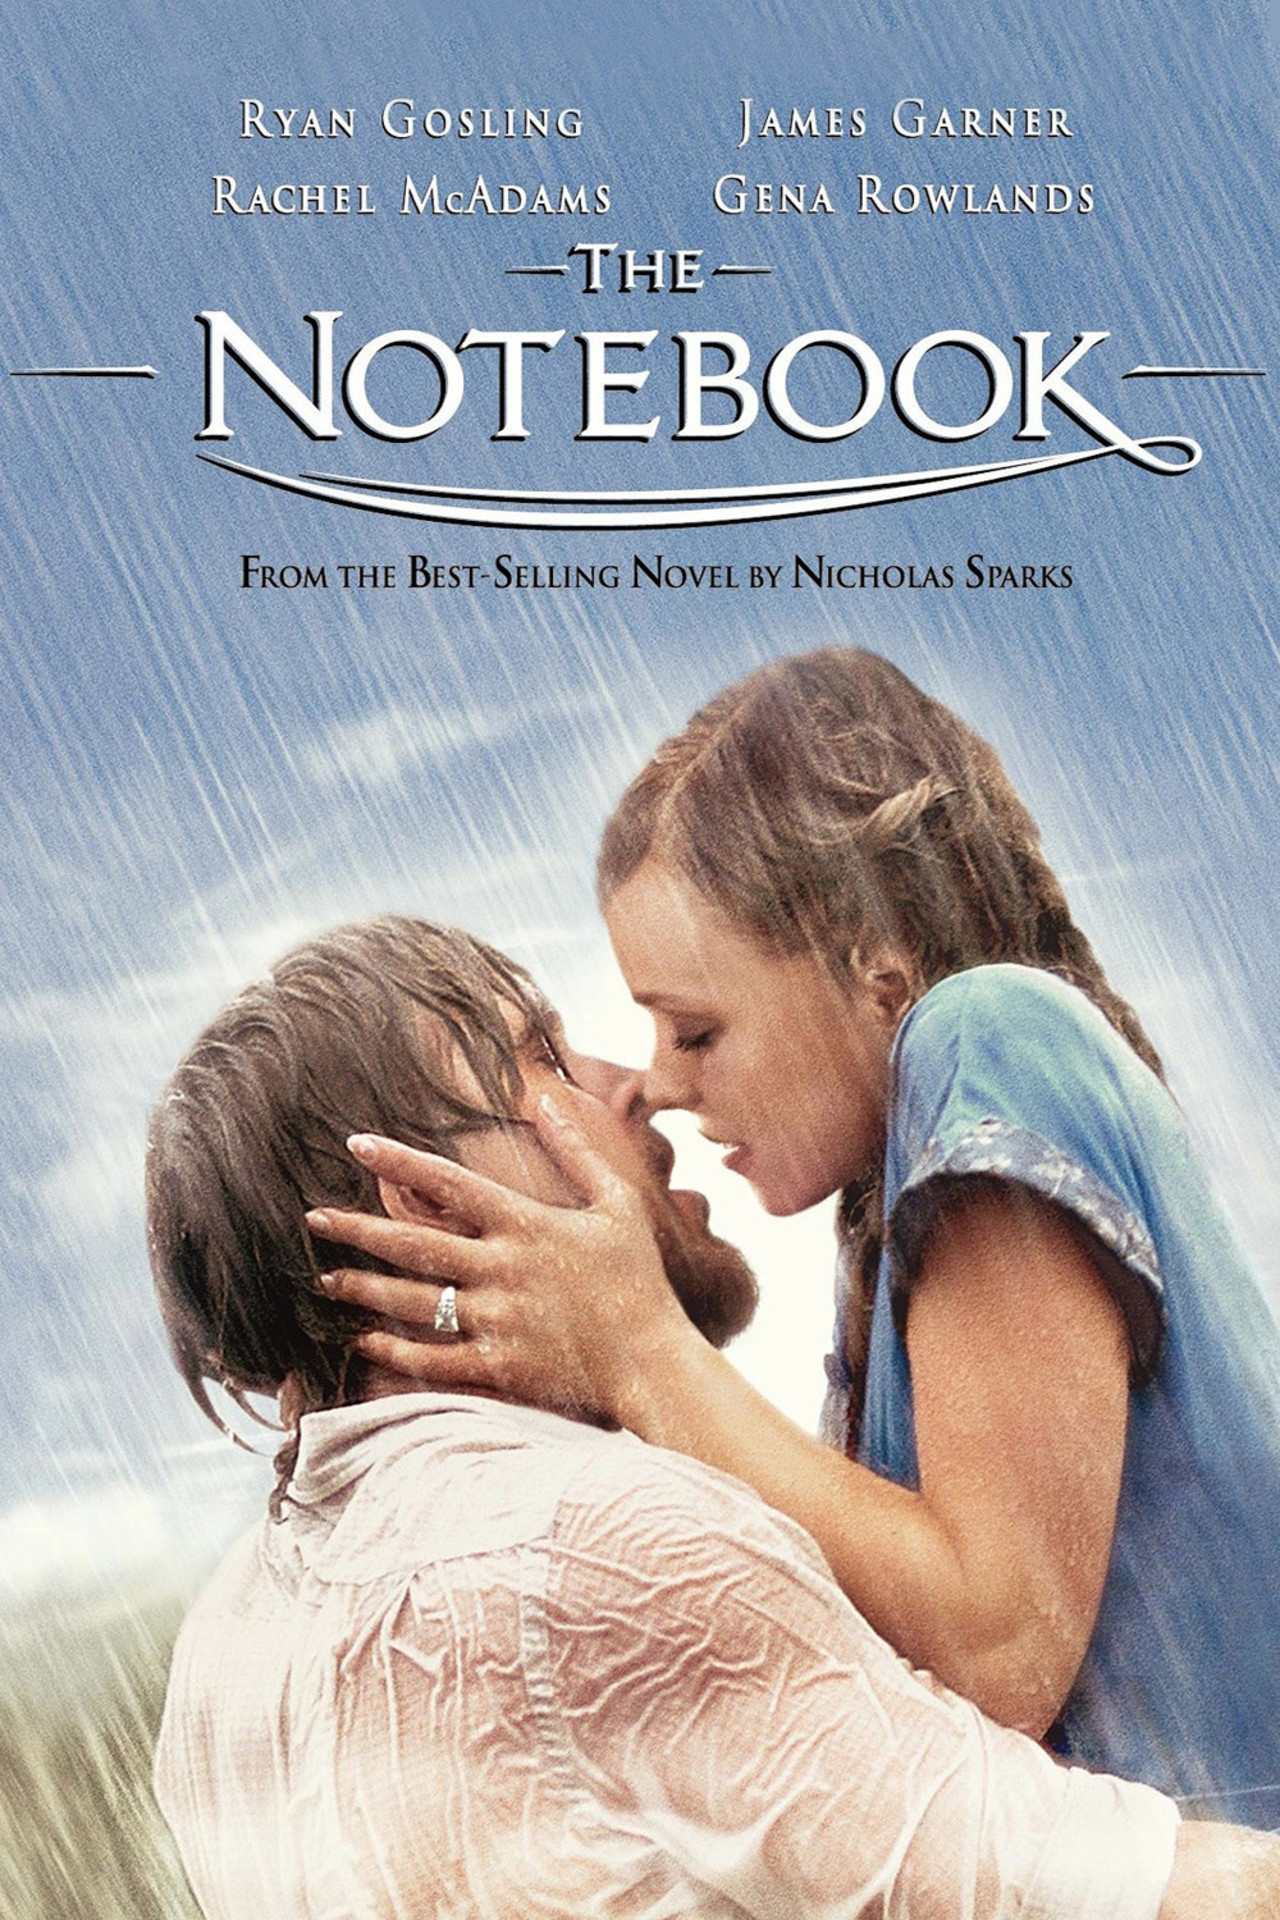 The Notebook kapak